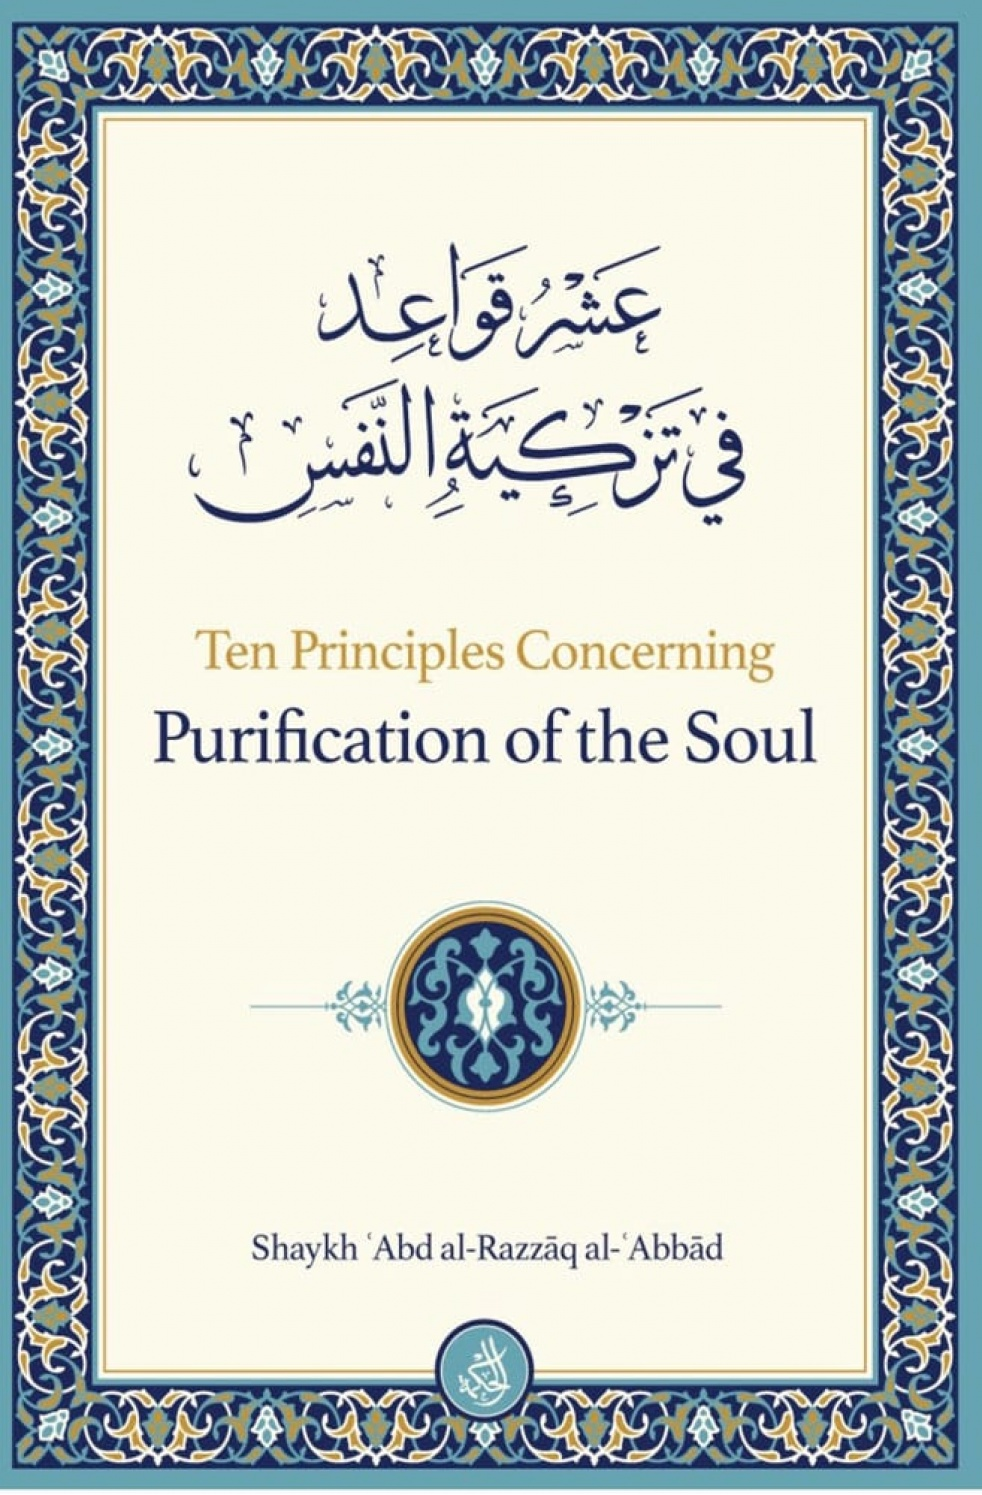 10 Principles on Purifying the Soul - imagen de show de portada